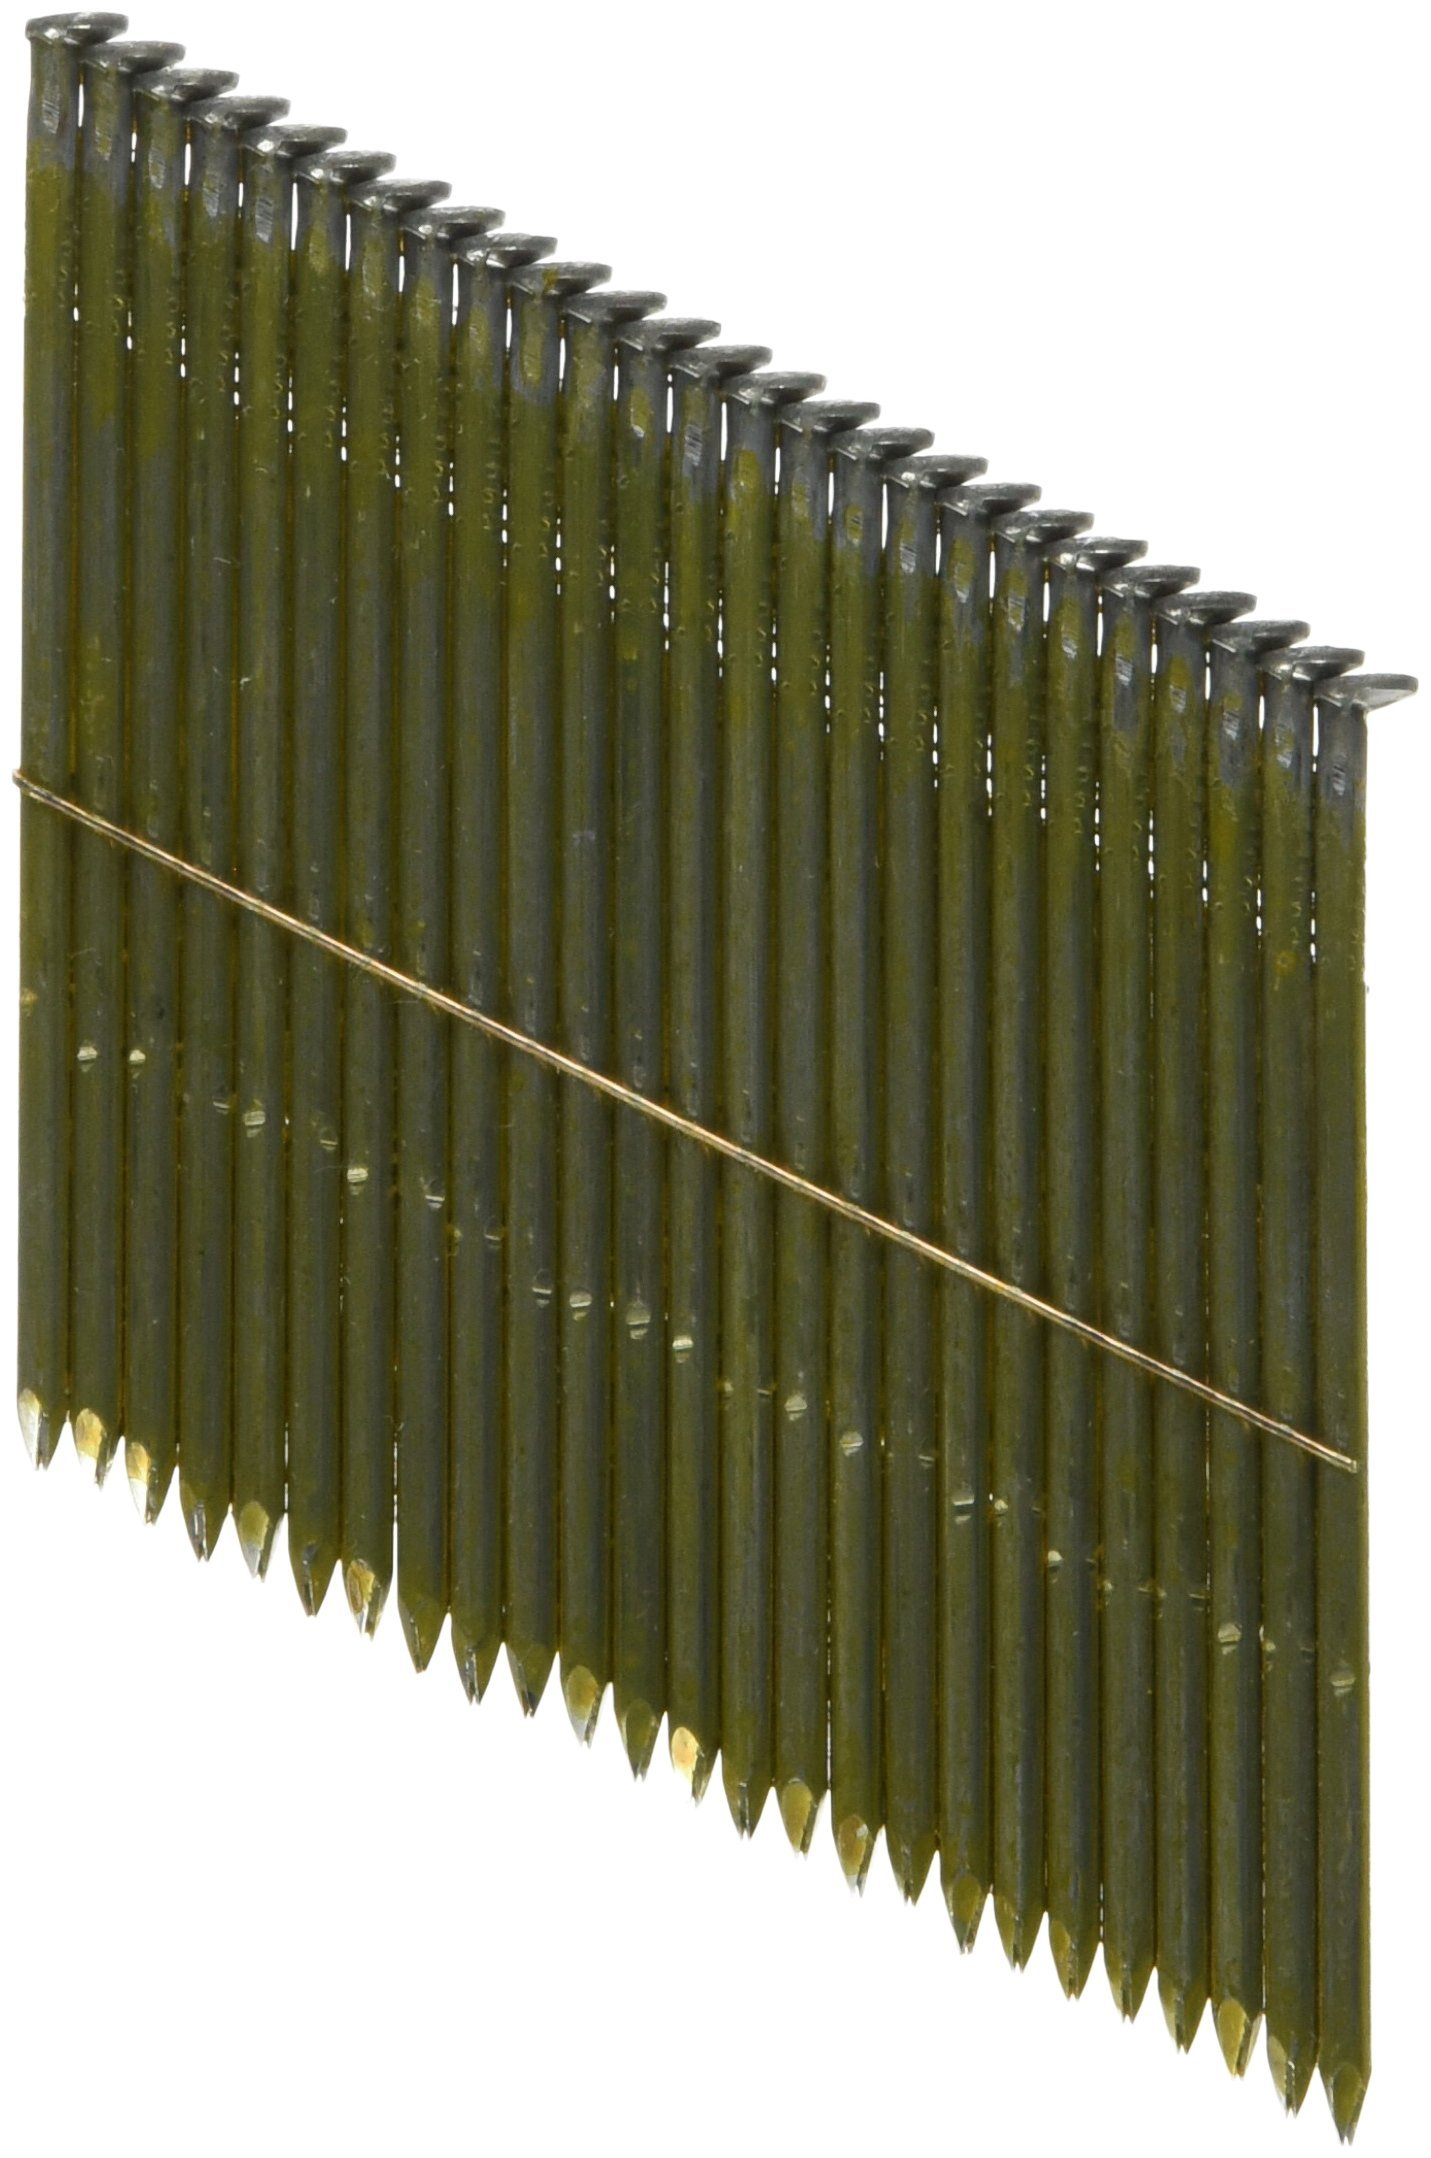 BOSTITCH S12D FH Degree 120 Inch Framing